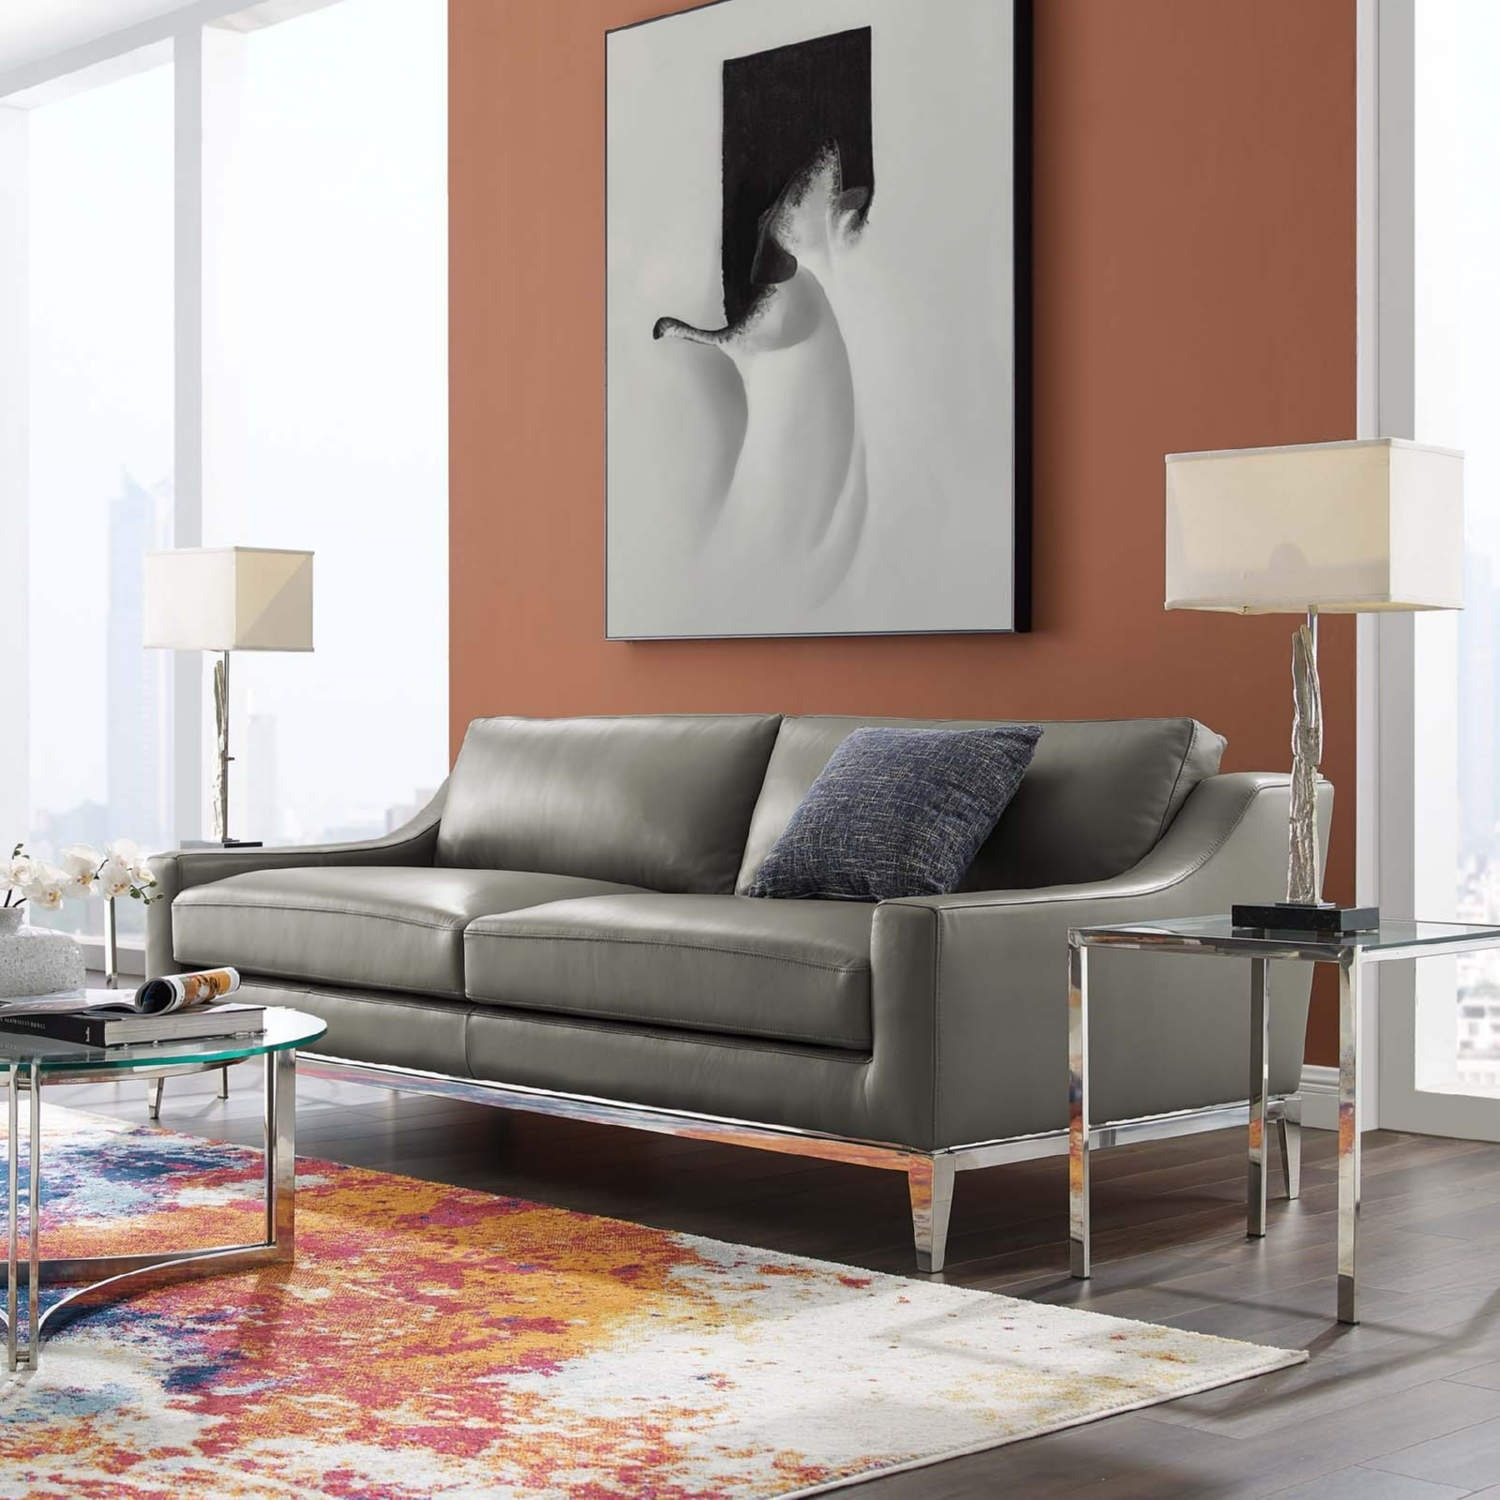 Sofa In Gray Leather Upholstery W/ Steel Base - image-6